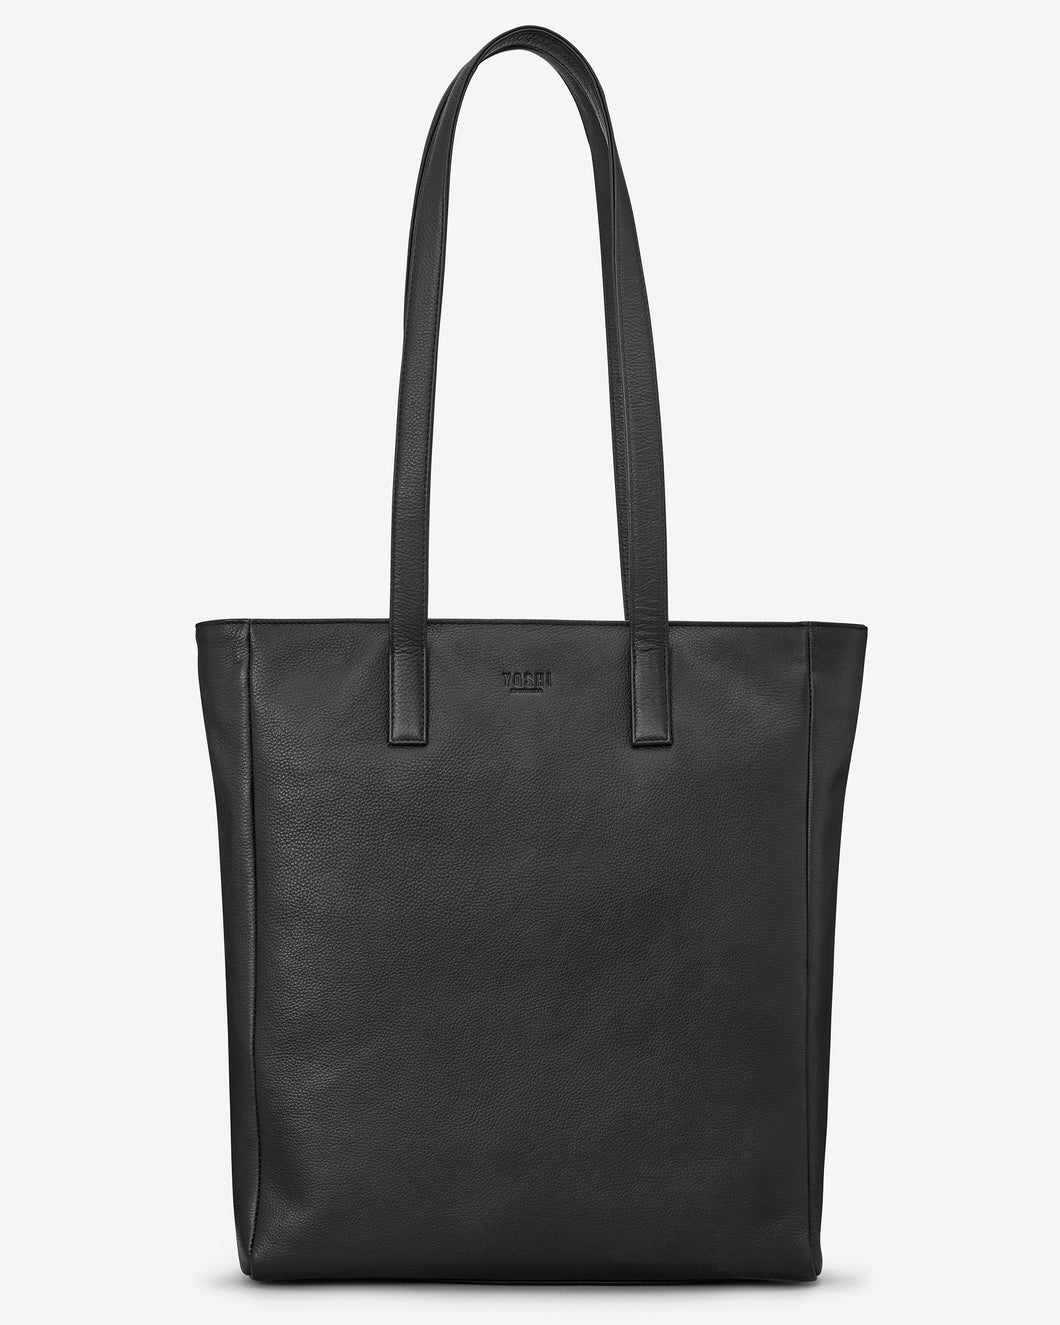 Yoshi YB224 Marlowe Leather Shopper Bag